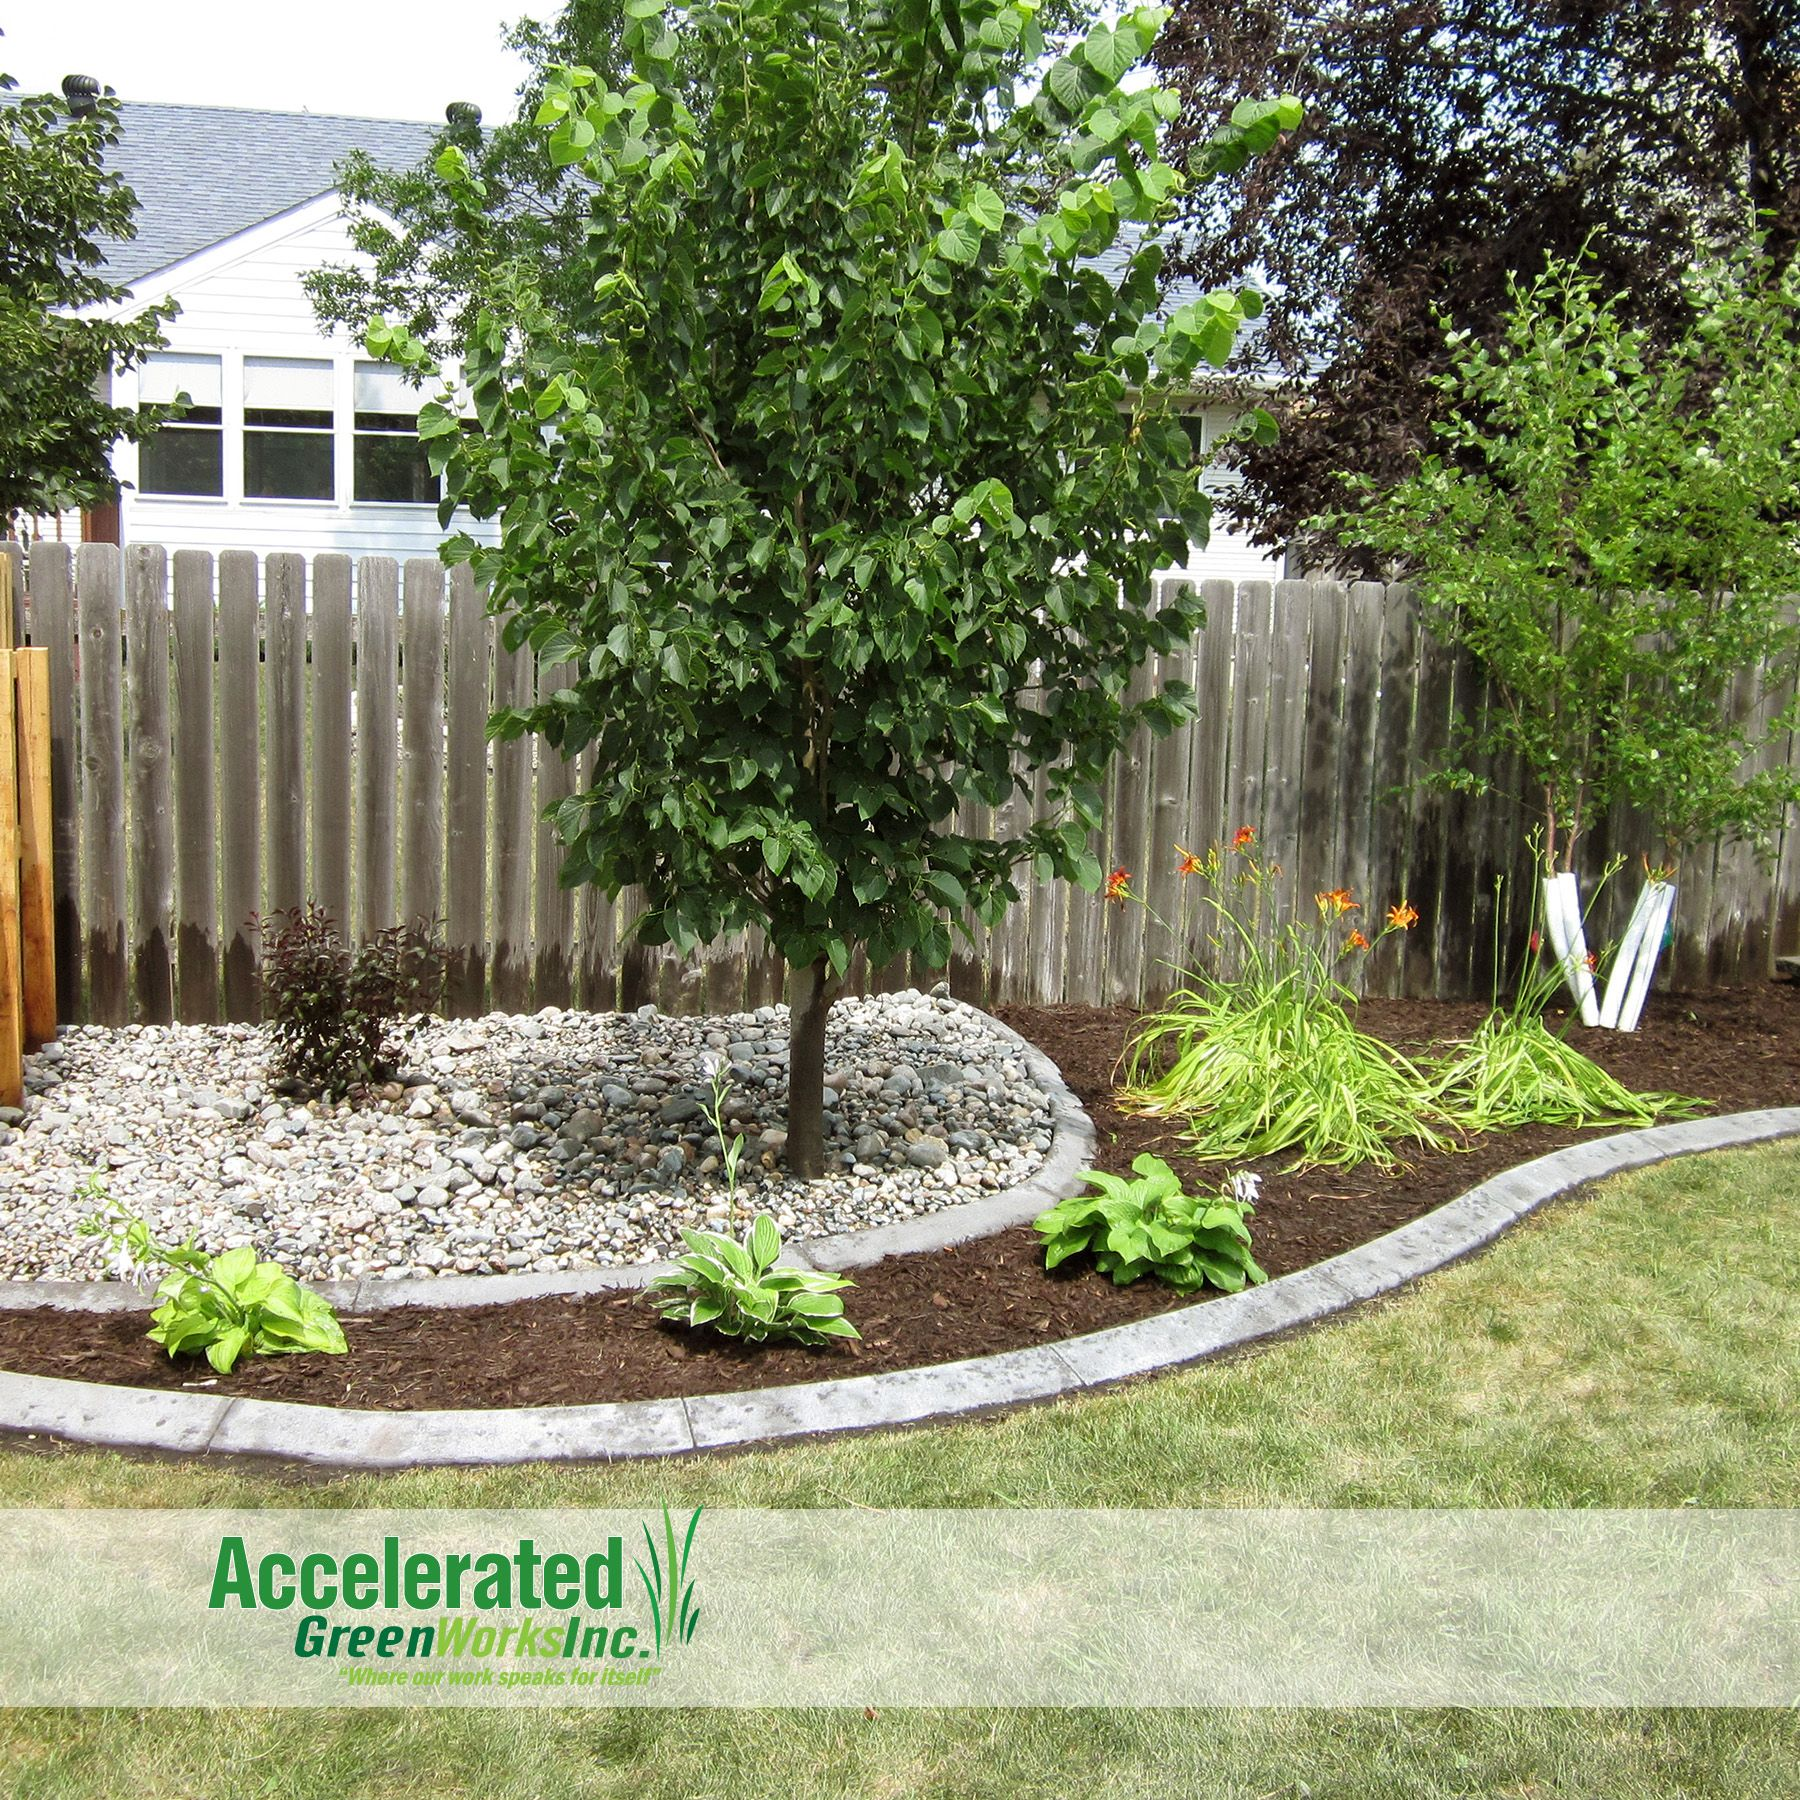 Try Using Your Edging To Create Depth In The Landscaping Alternate Fill Materials Shown Here As An Att Landscaping With Rocks Backyard Landscaping Landscape